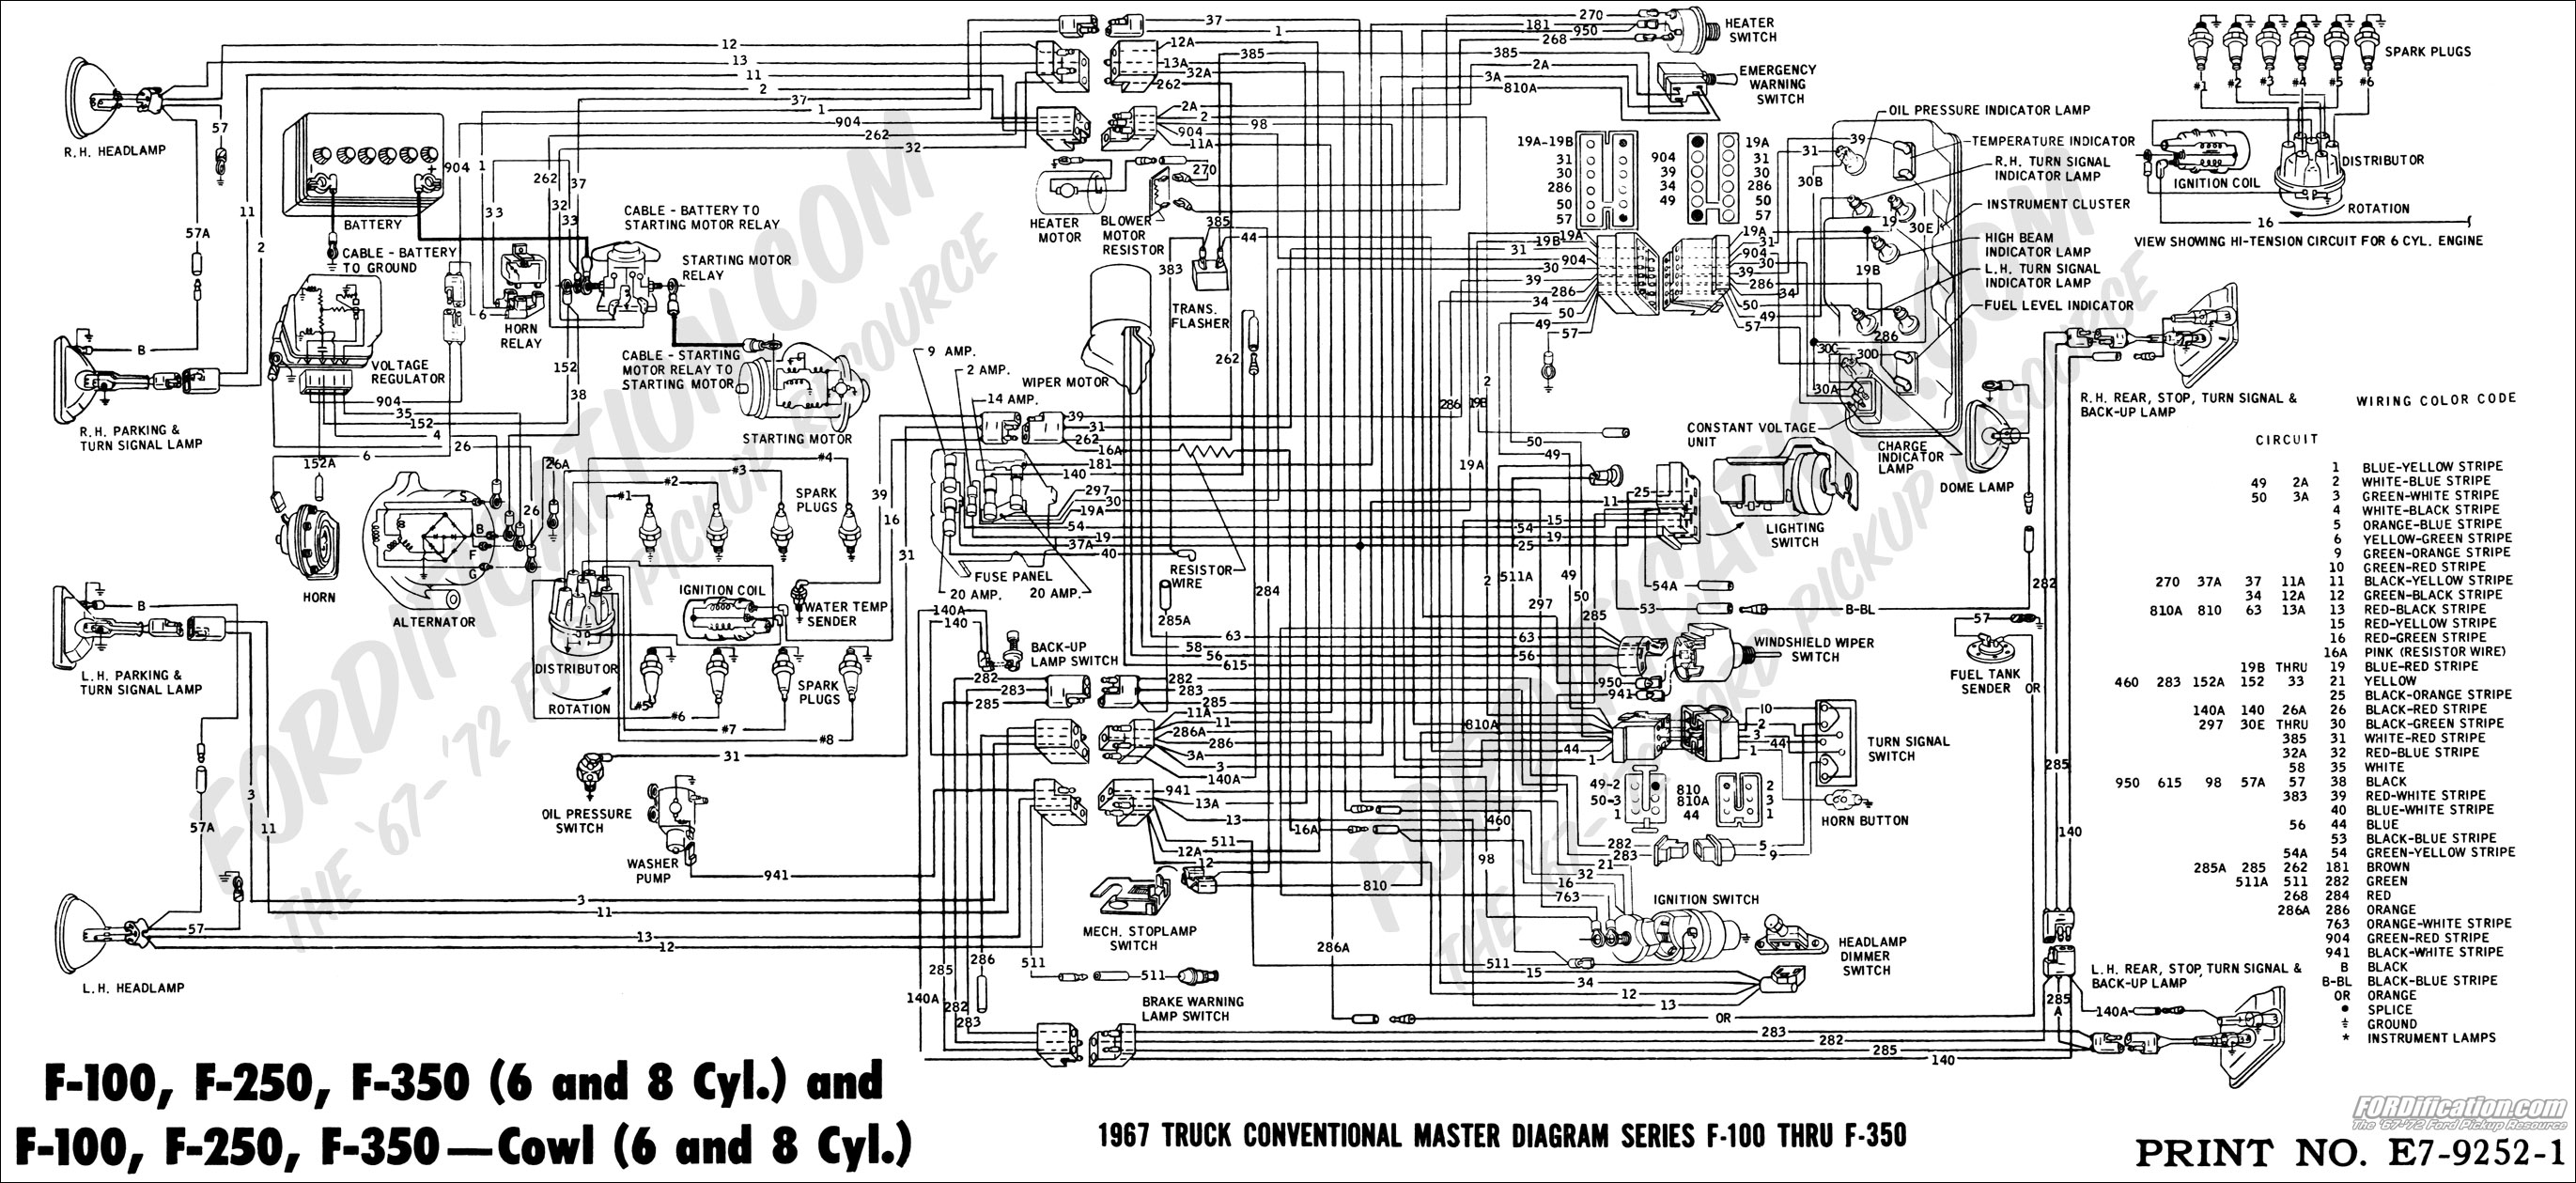 ford truck technical drawings and schematics section h wiring on 1989 Ford F -150 Wiring Diagram for ford truck technical drawings and schematics section h wiring diagrams at 1991 Ford F -150 Wiring Diagram